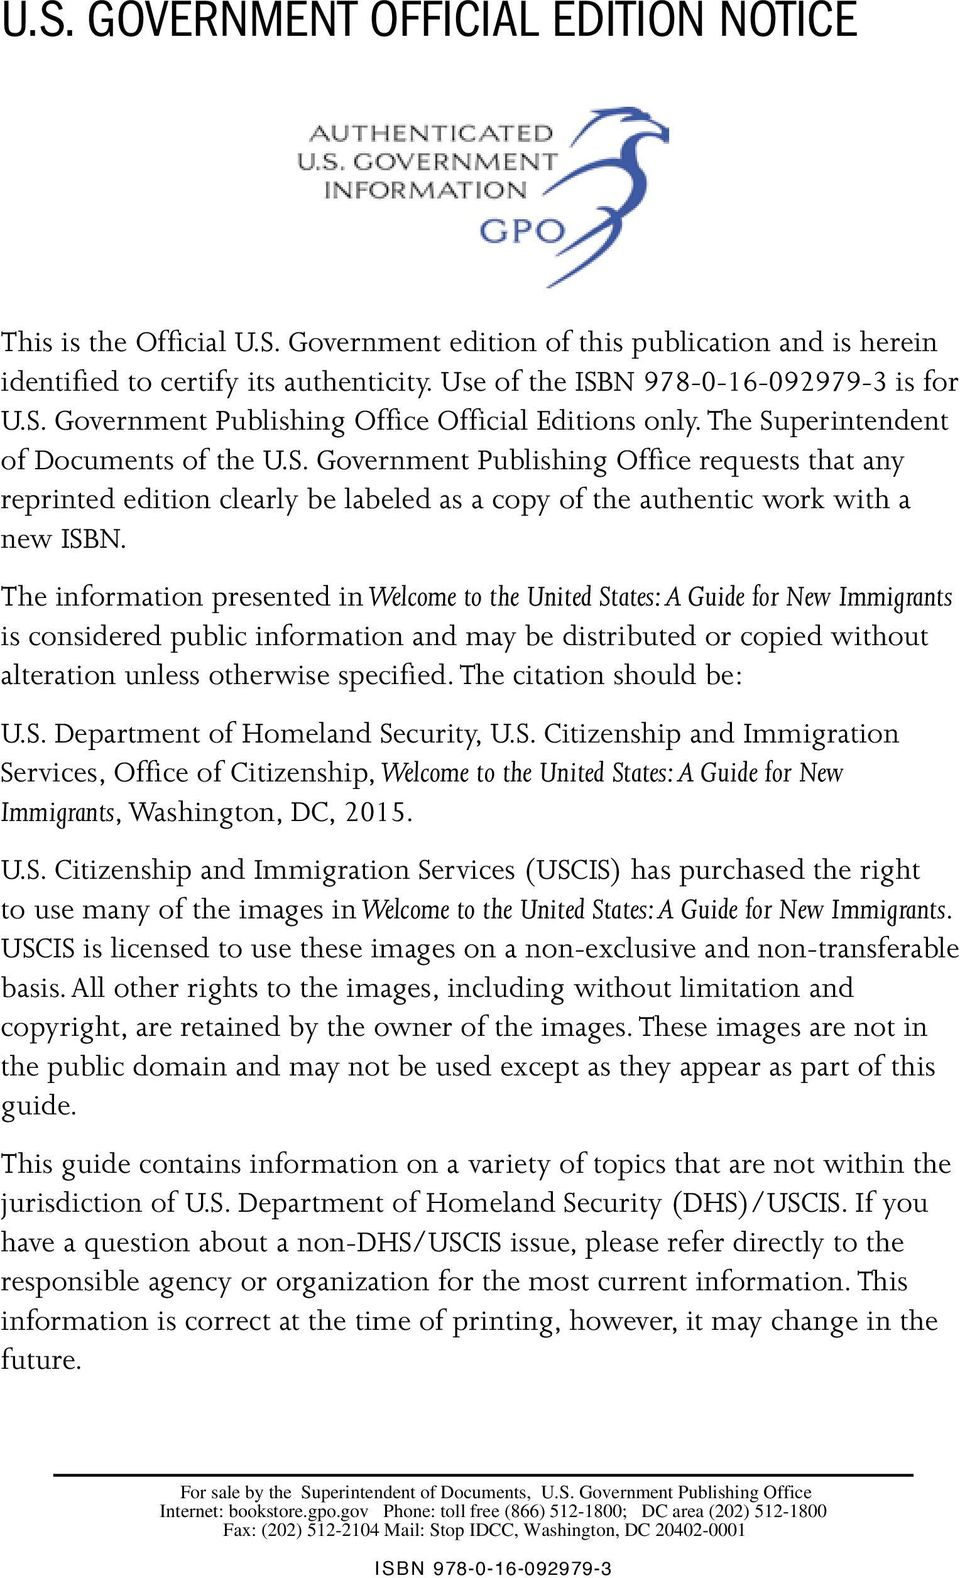 The information presented in Welcome to the United States: A Guide for New Immigrants is considered public information and may be distributed or copied without alteration unless otherwise specified.